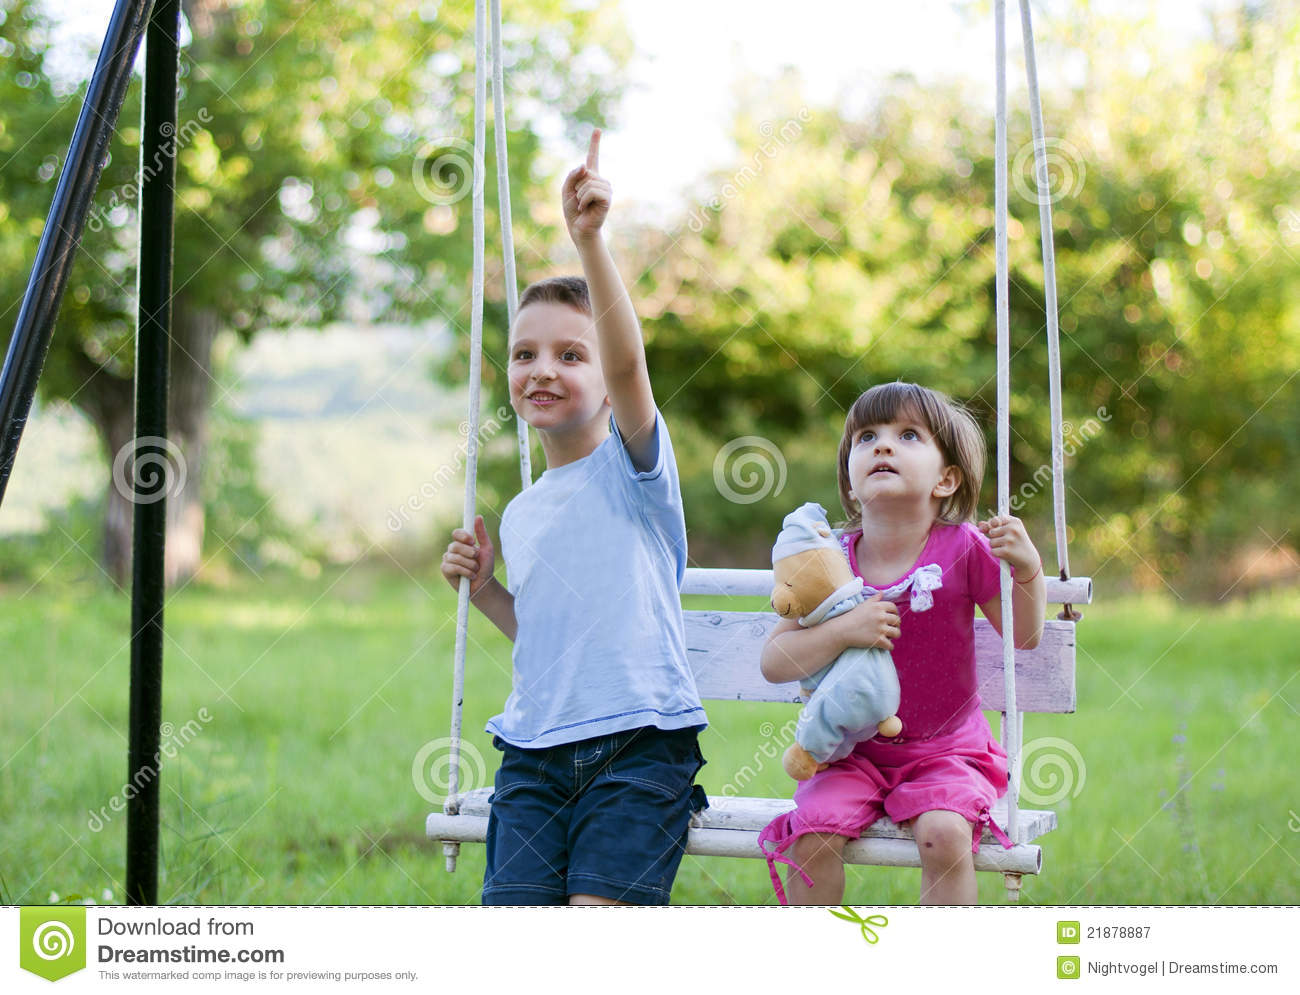 brother-sister-swing-21878887.jpg